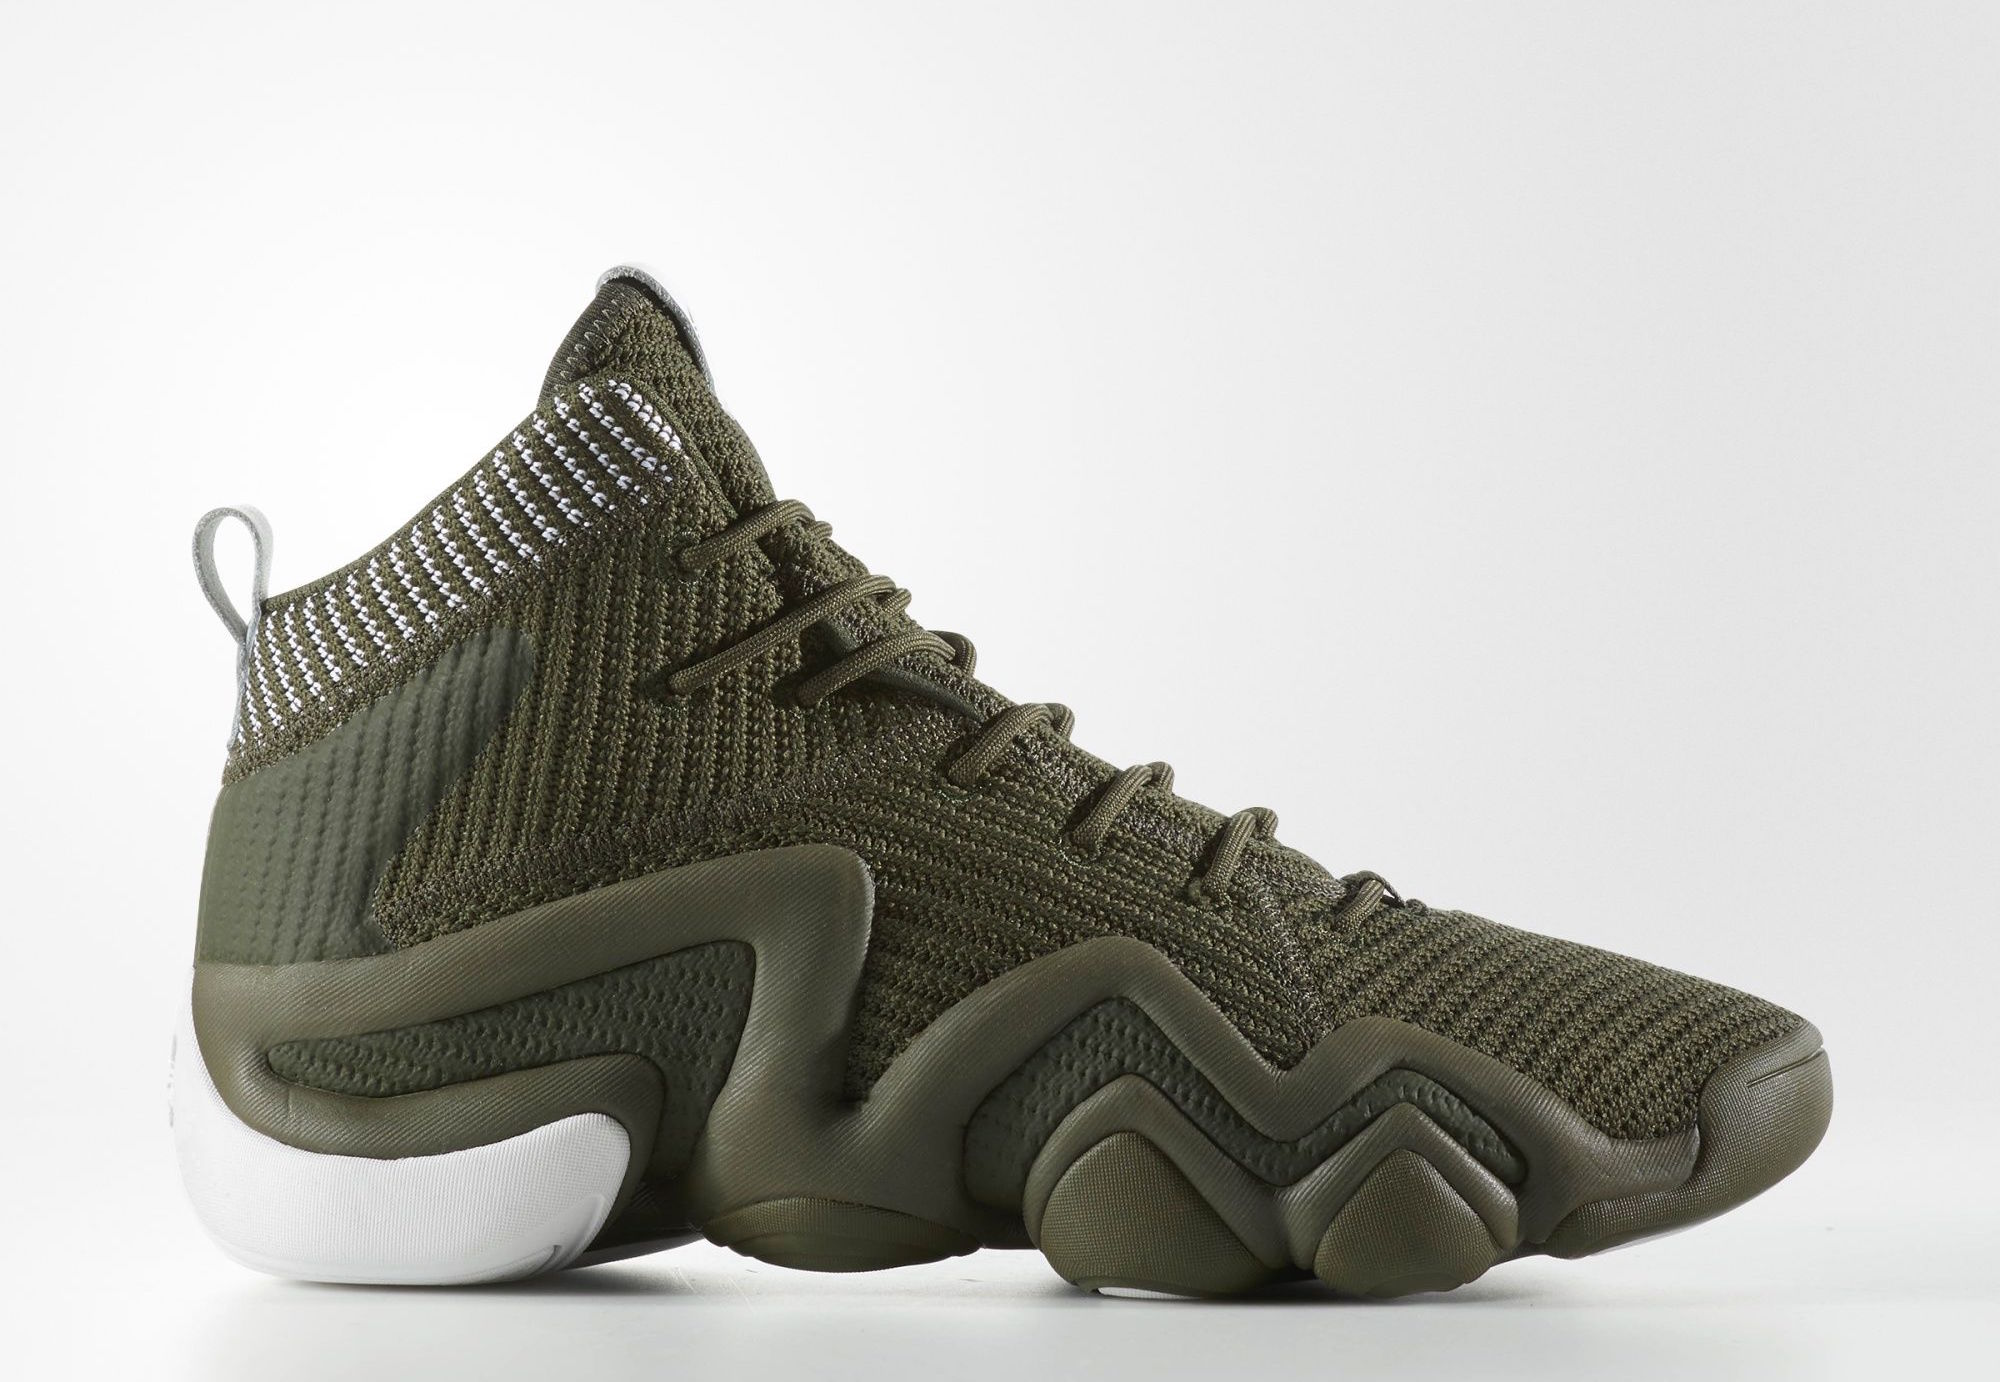 328ab83fc0cd adidas crazy 8 more upcoming colorways